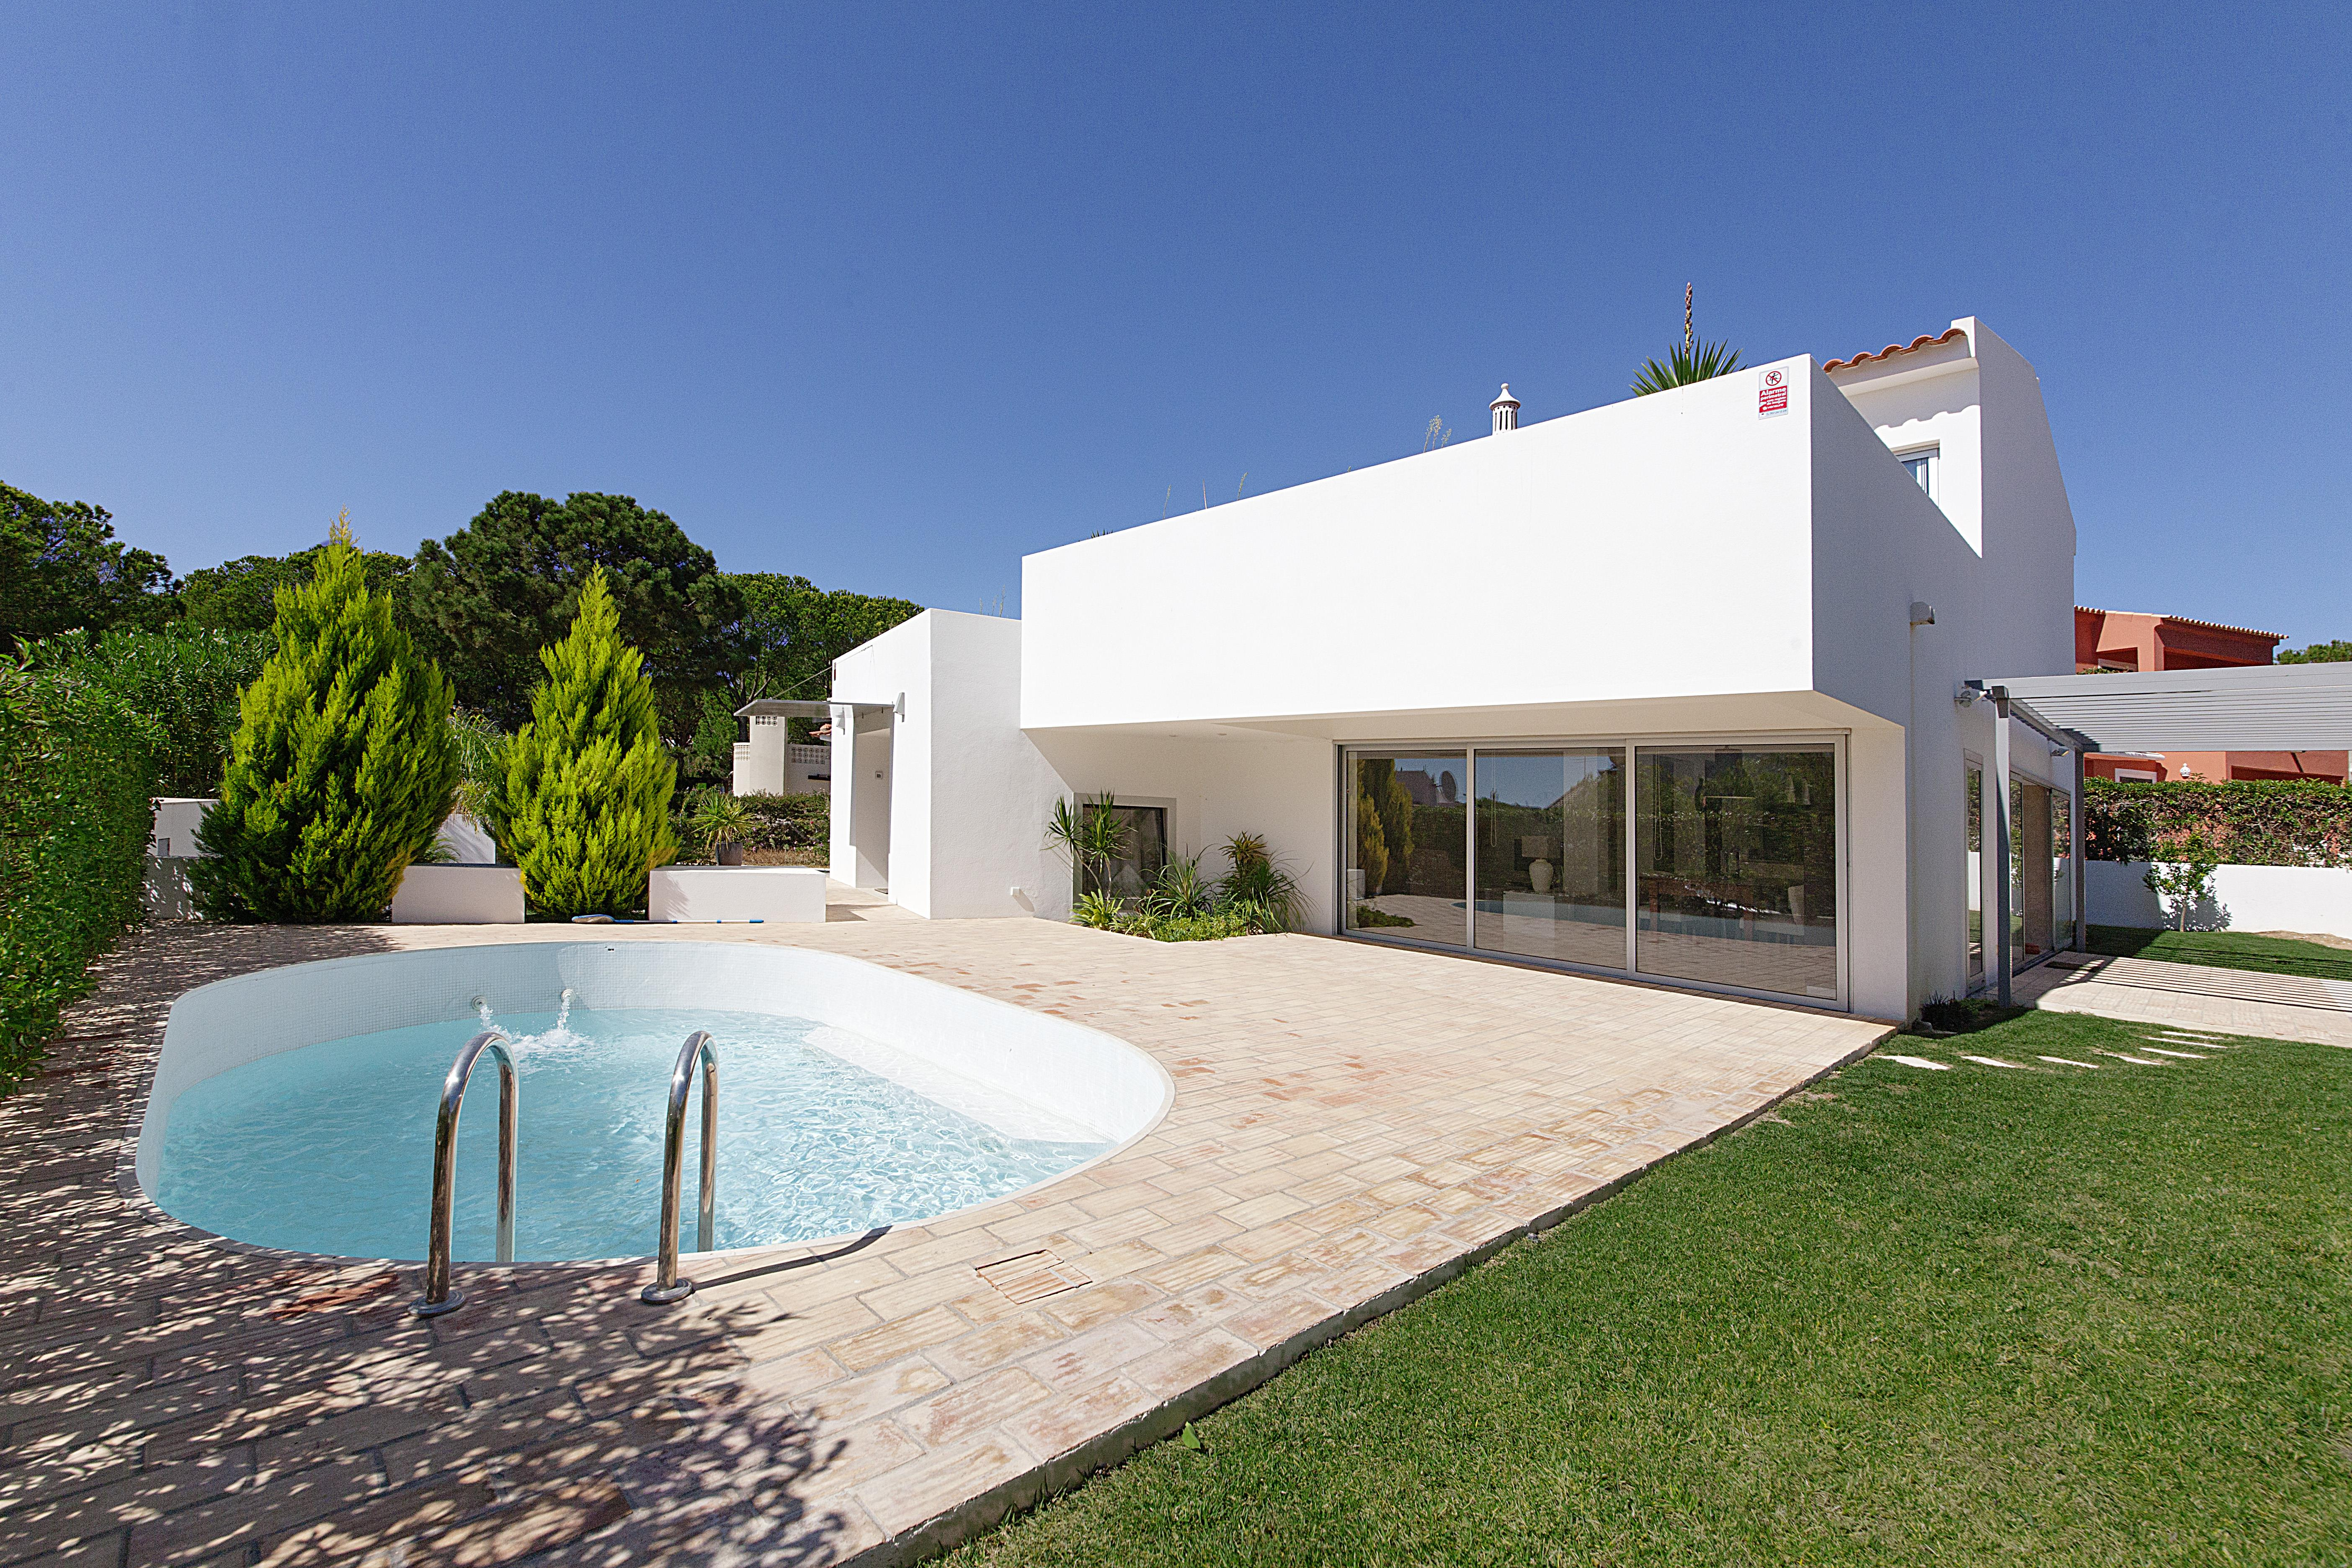 Single Family Home for Sale at Detached house, 4 bedrooms, for Sale Loule, Algarve 8125- Portugal